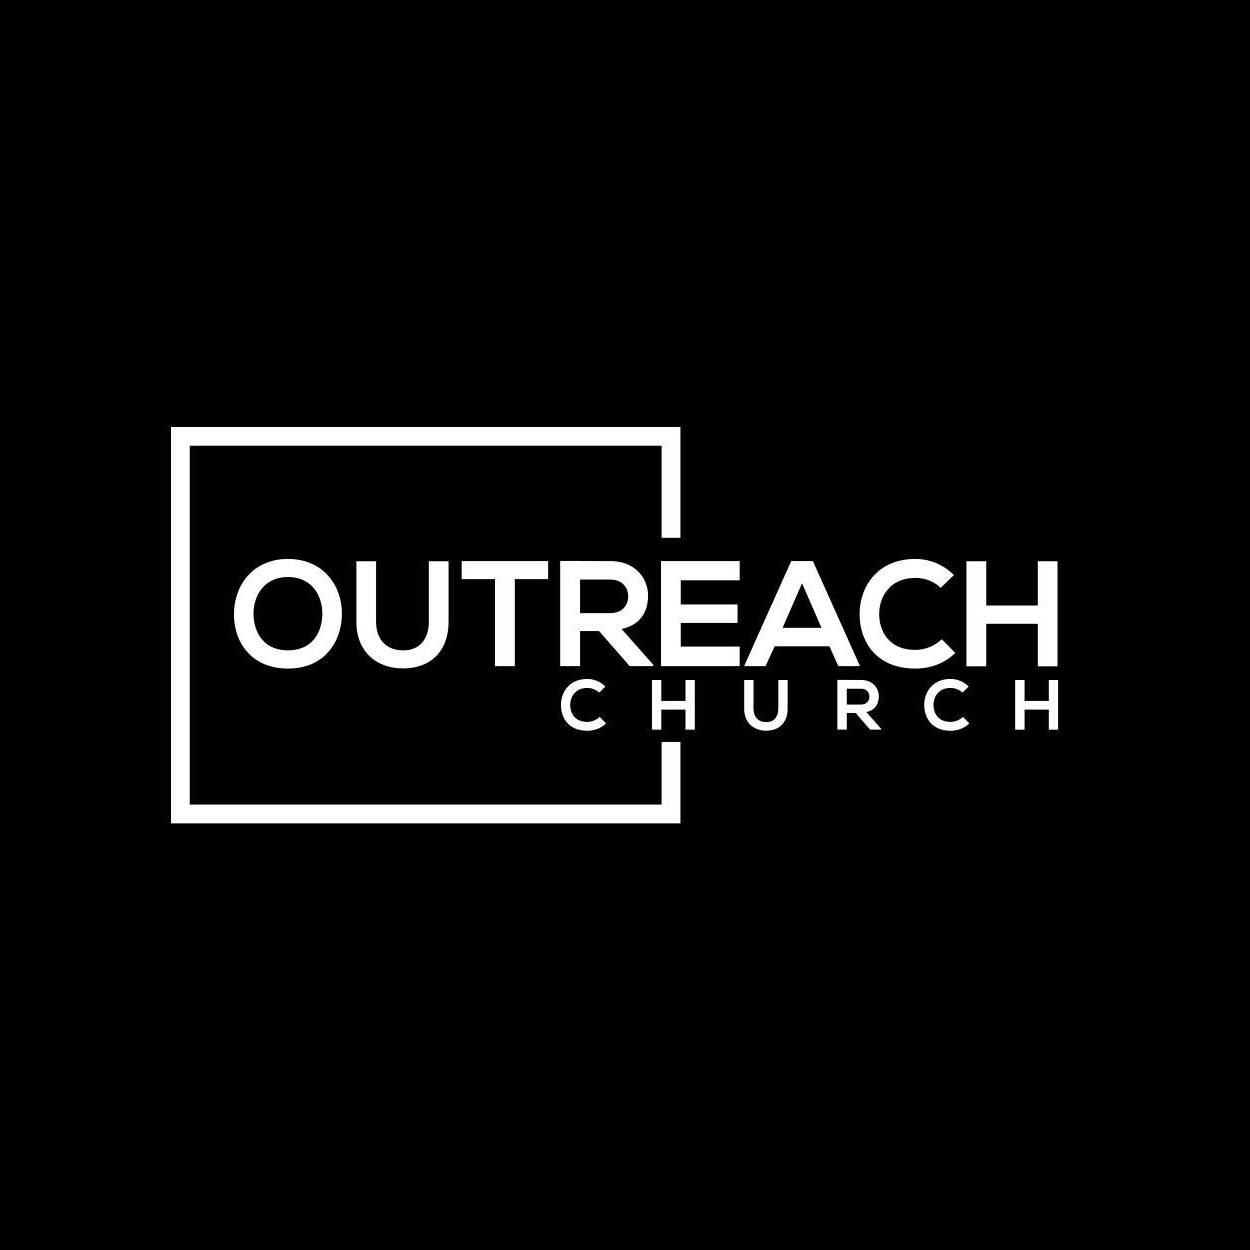 Outreach Church